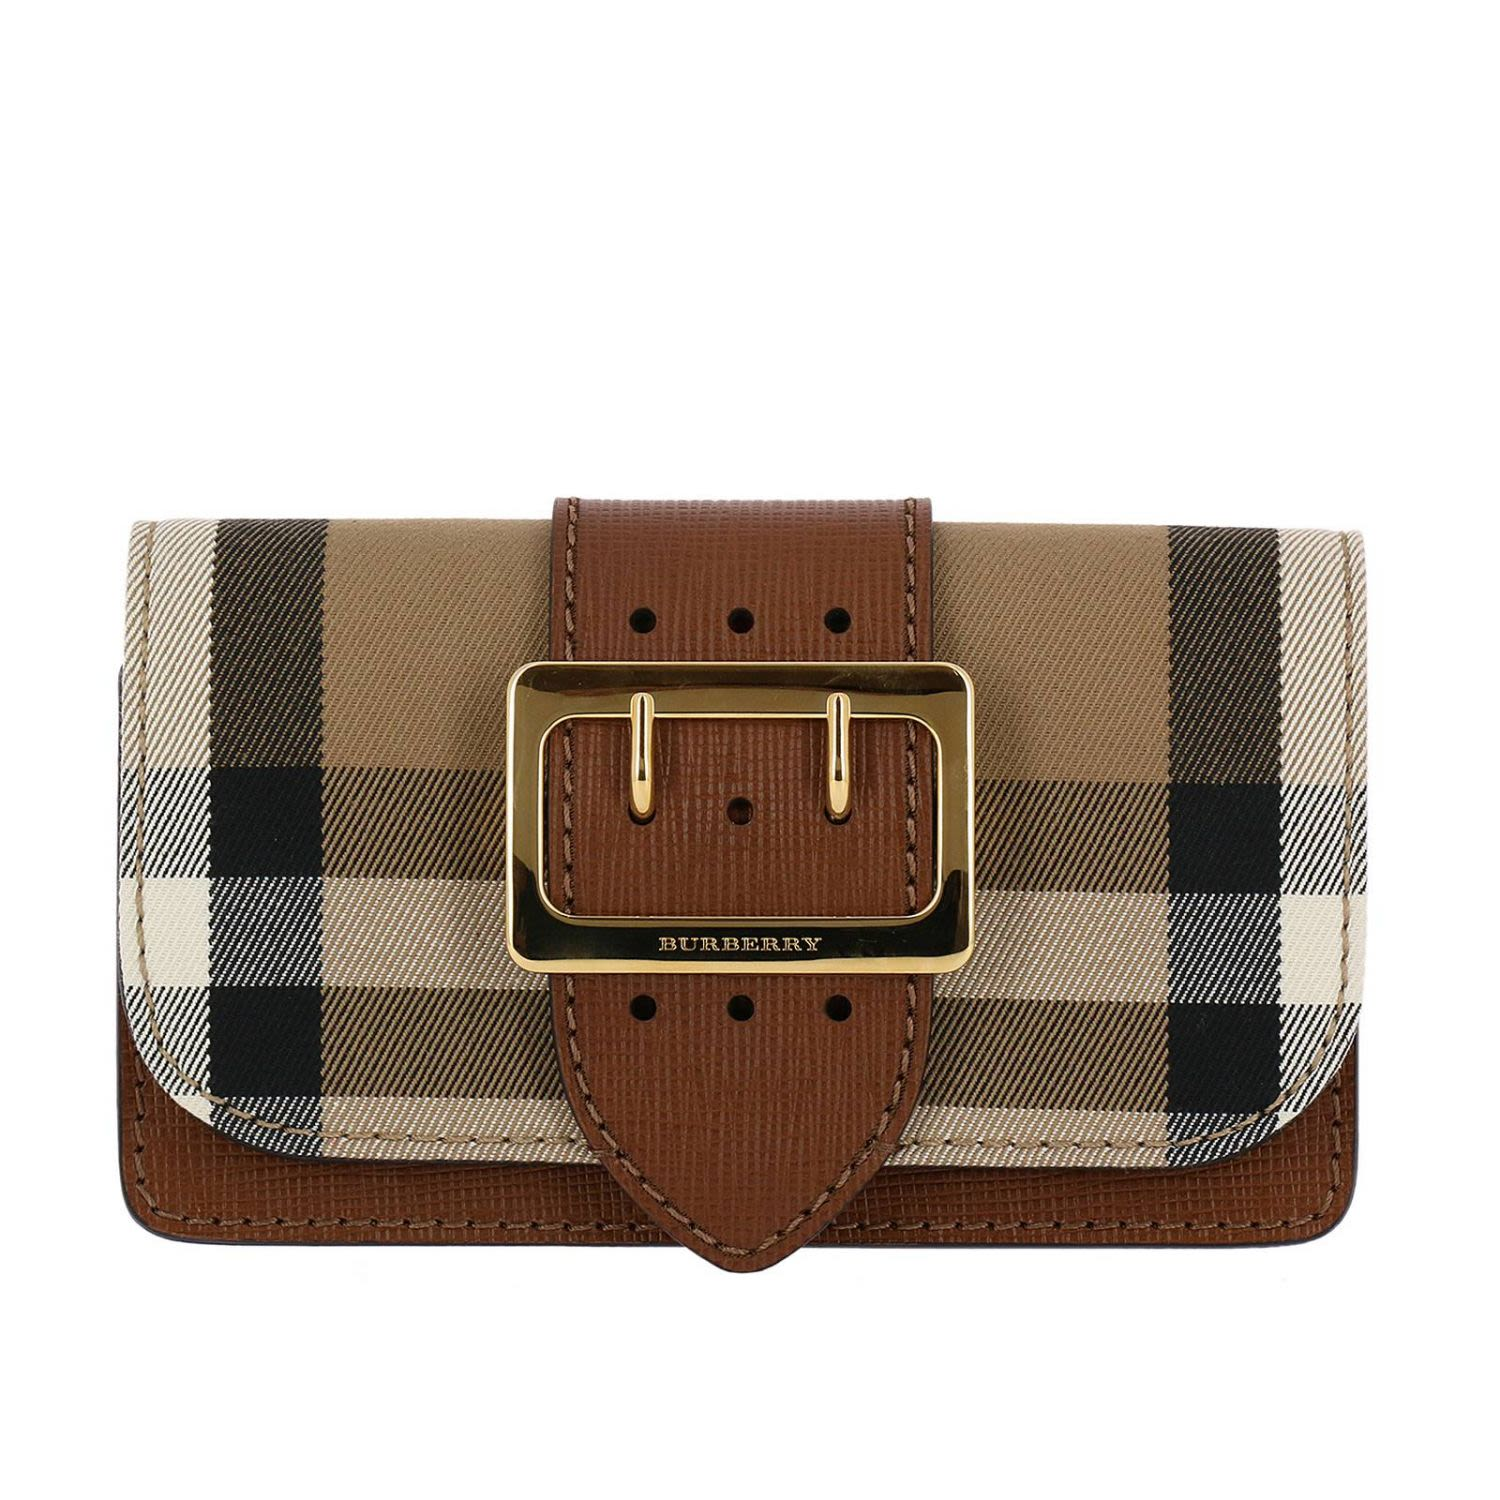 Mini Bag Shoulder Bag Women Burberry